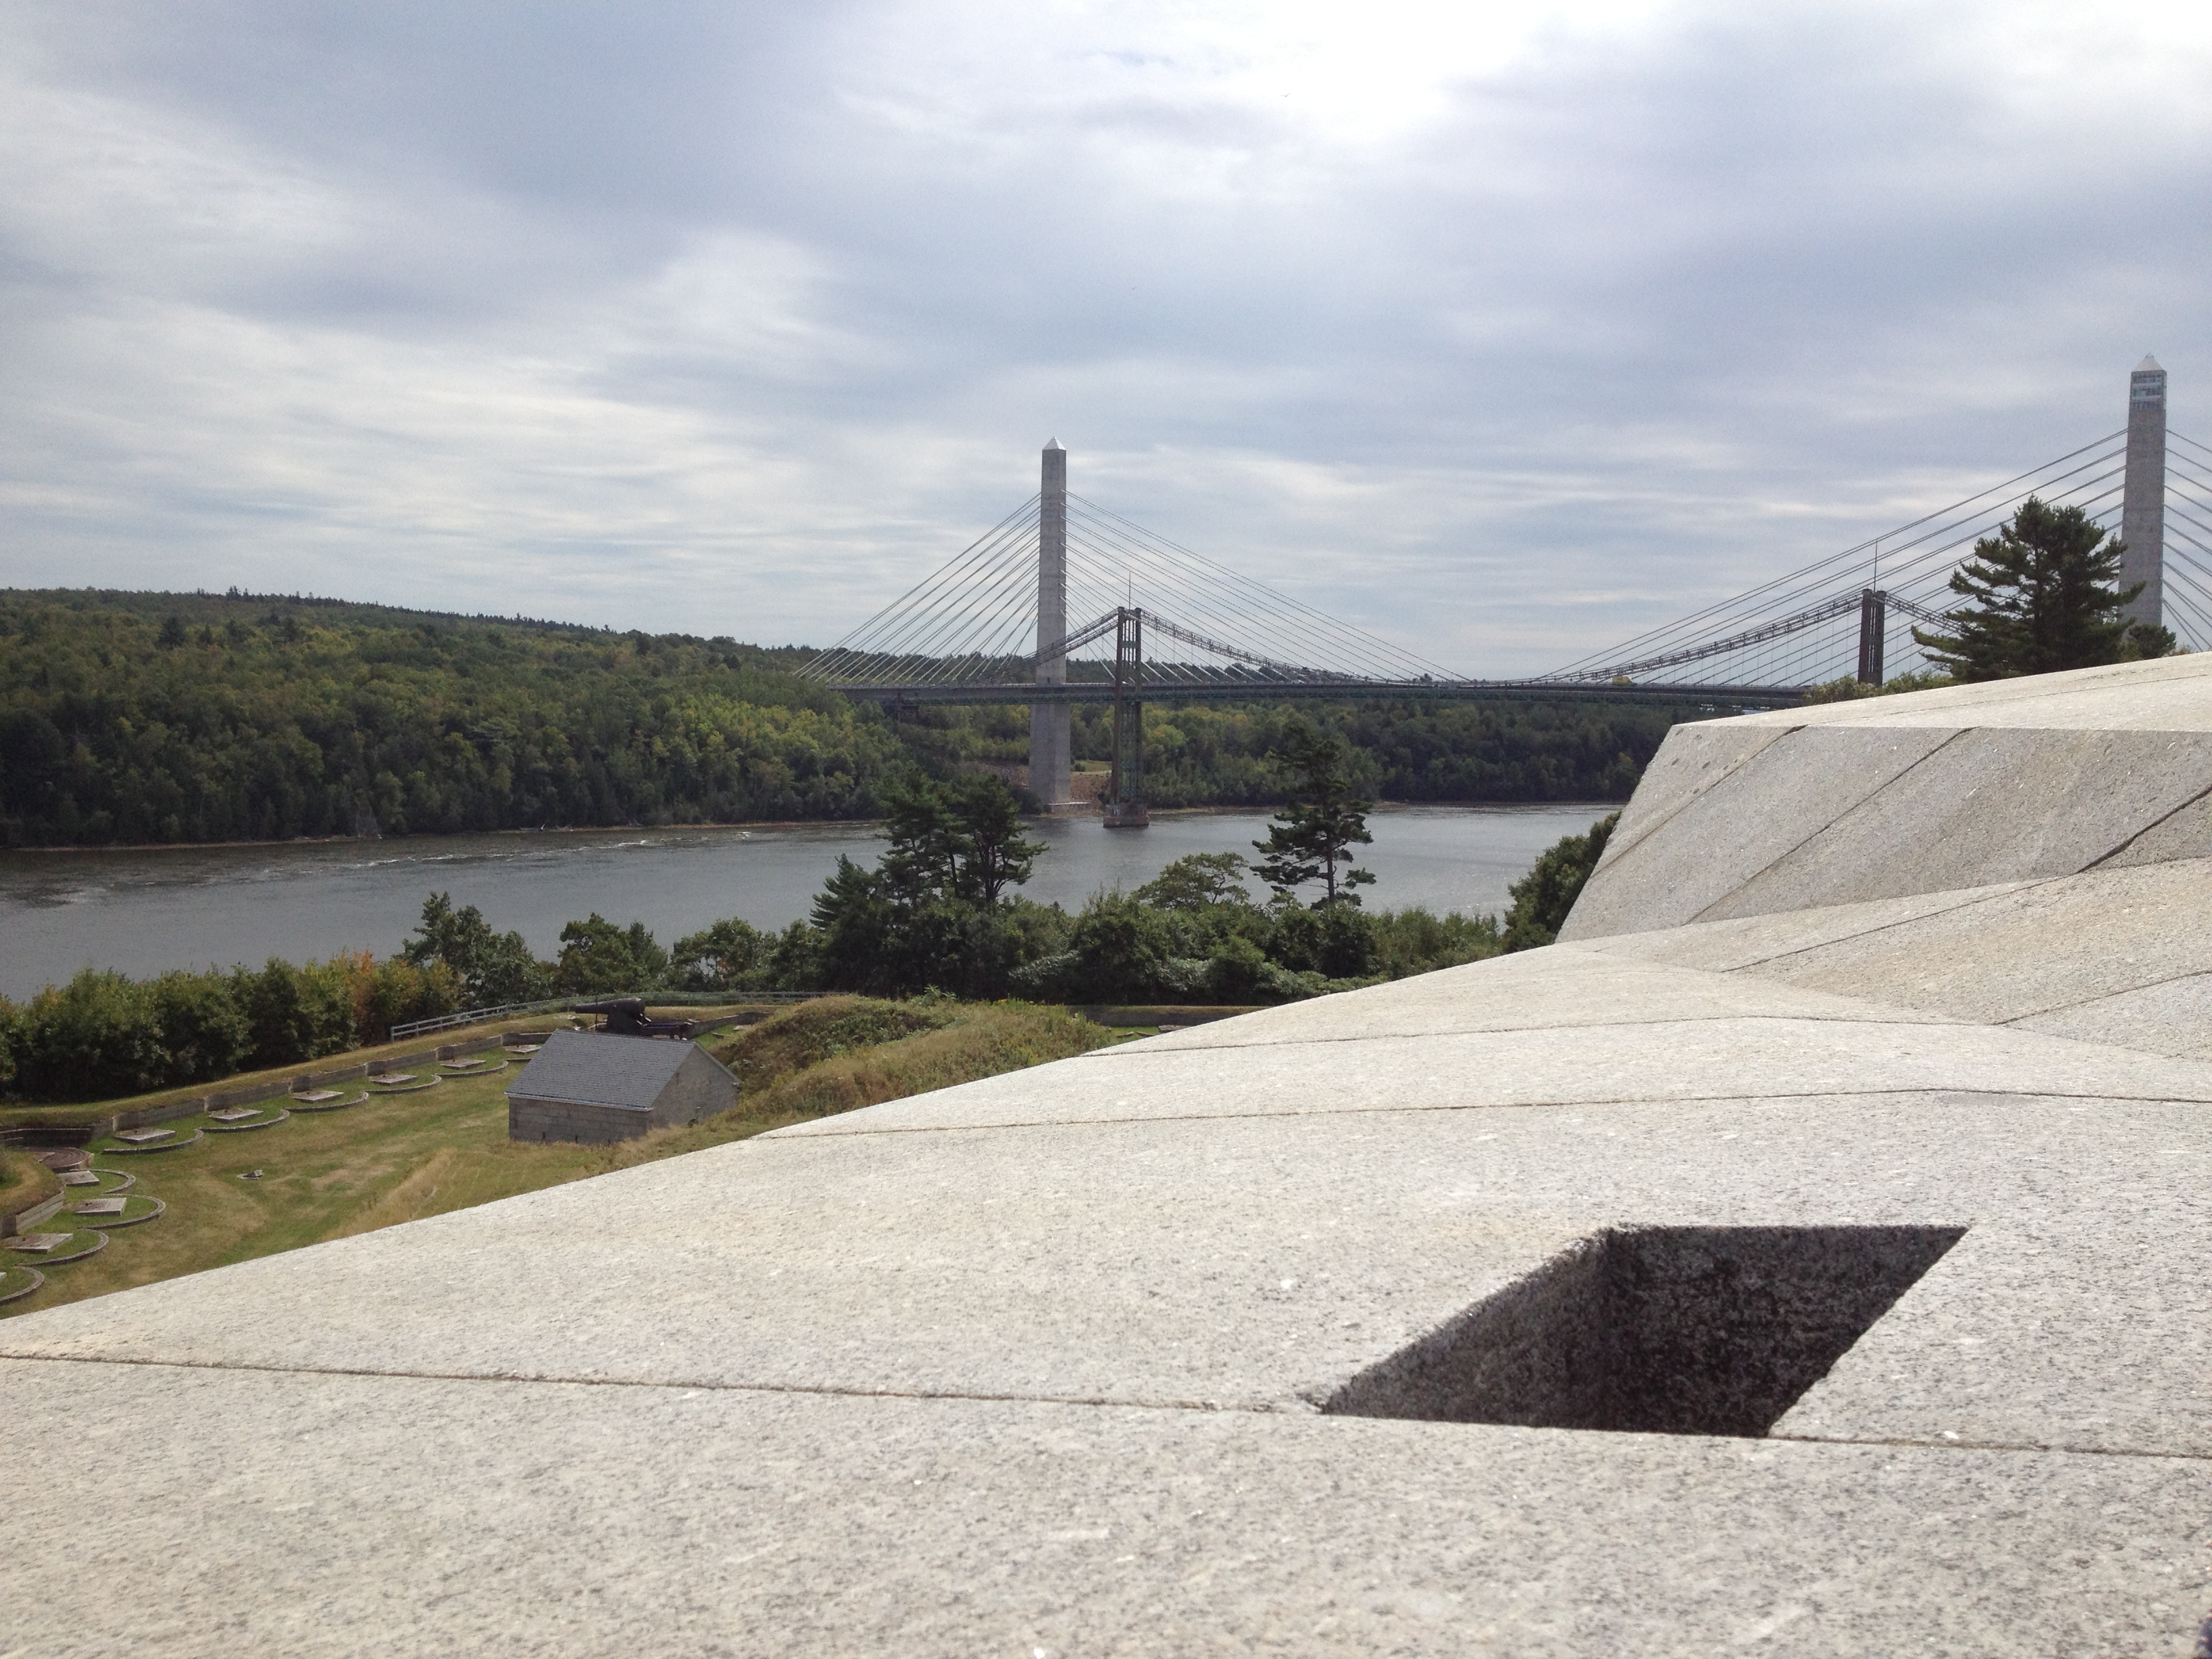 View from Fort Knox looking towards the bridges over the Penobscot Narrows